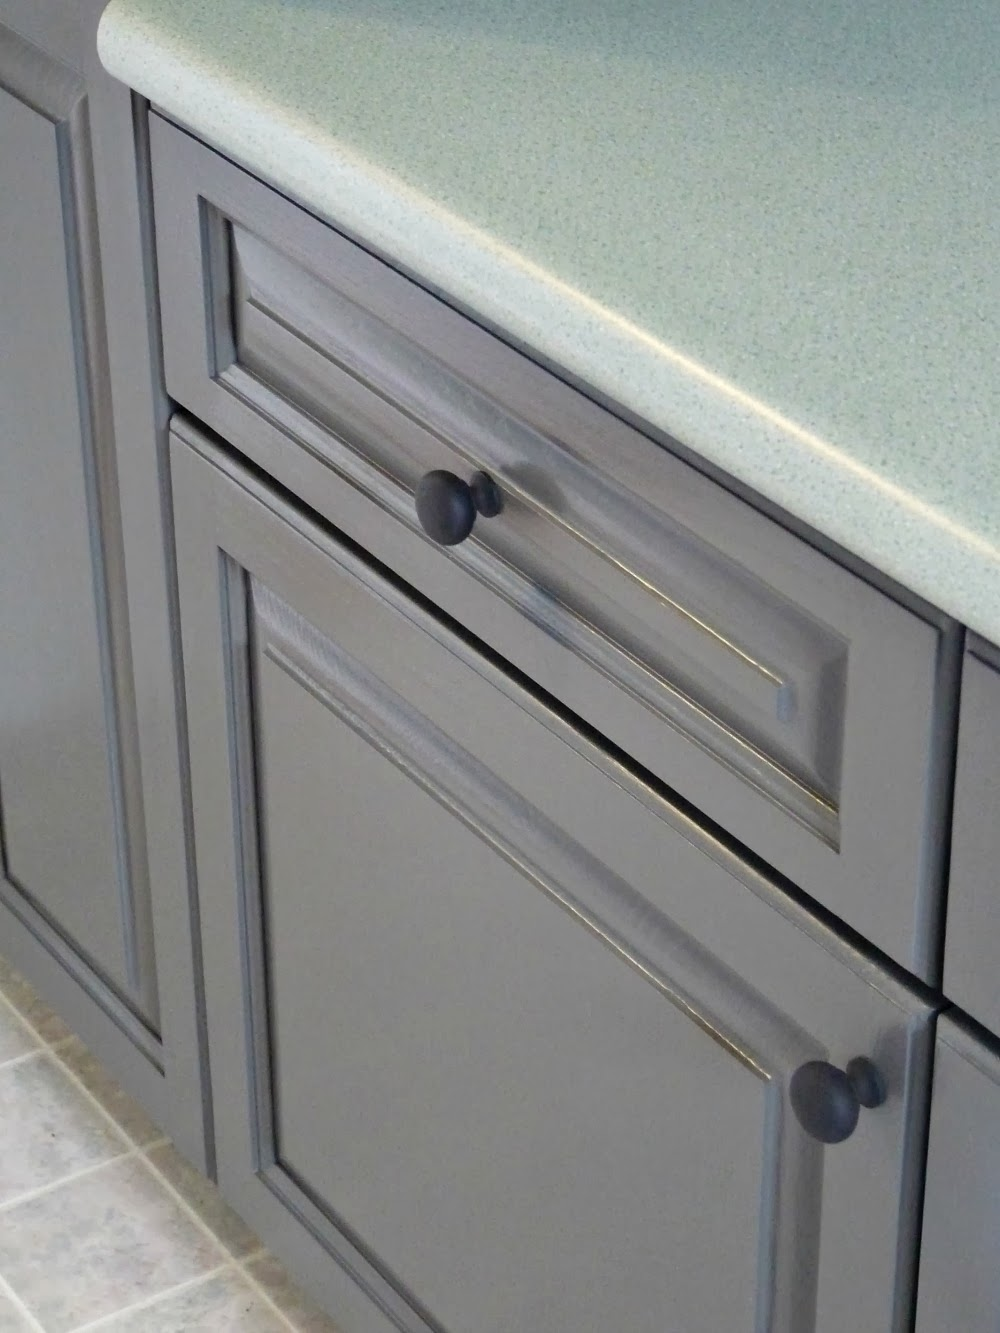 Rustoleum Countertops Transformations Reviews | Home ...